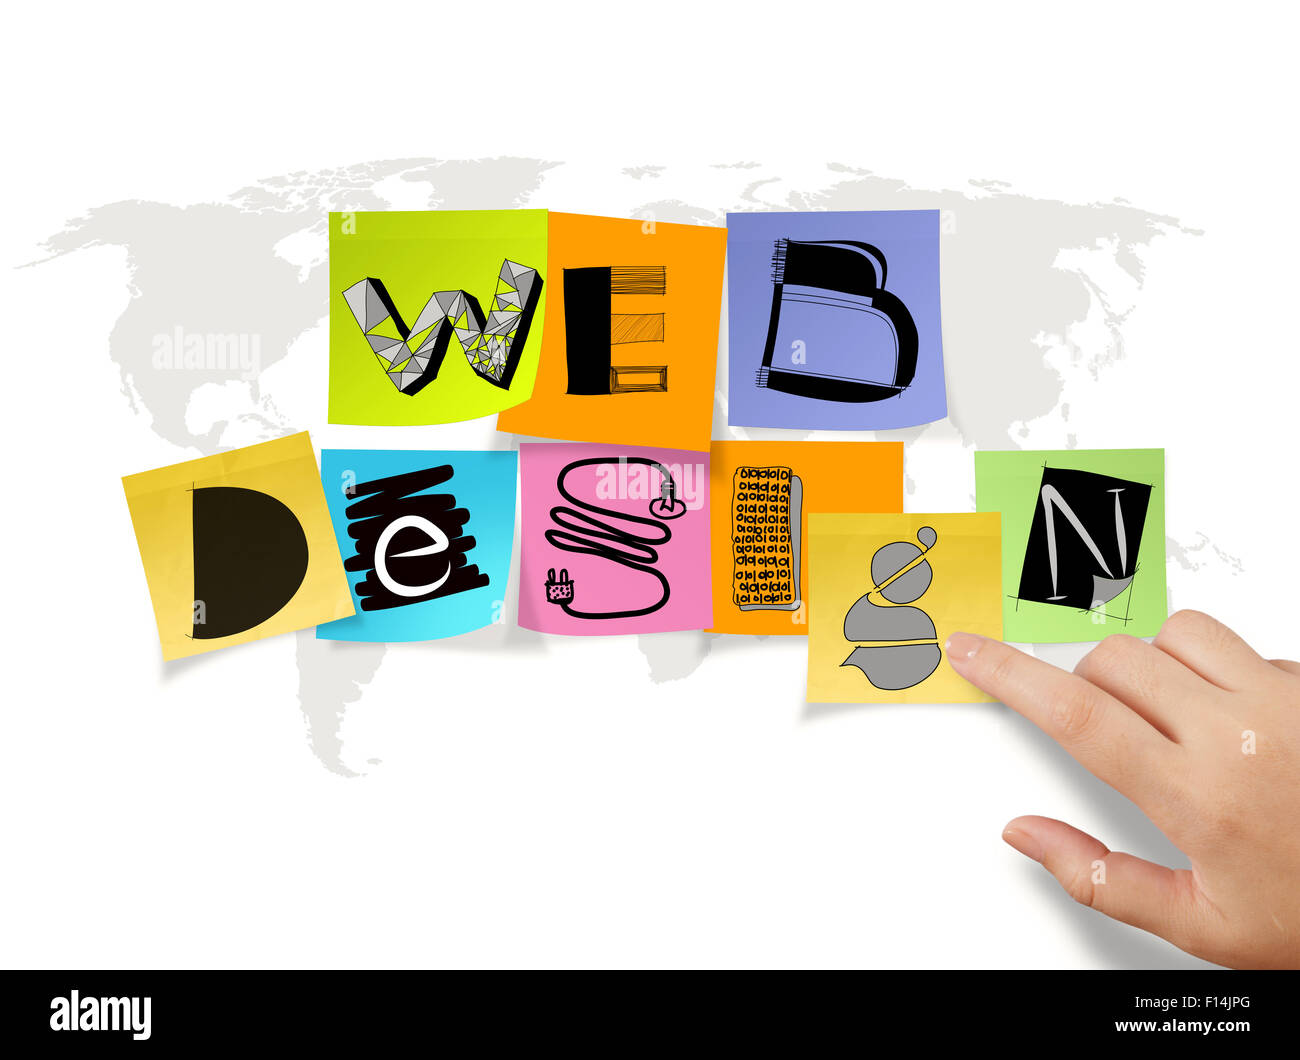 Hand touch drawing web design on sticky note and world map hand touch drawing web design on sticky note and world map background as concept gumiabroncs Choice Image